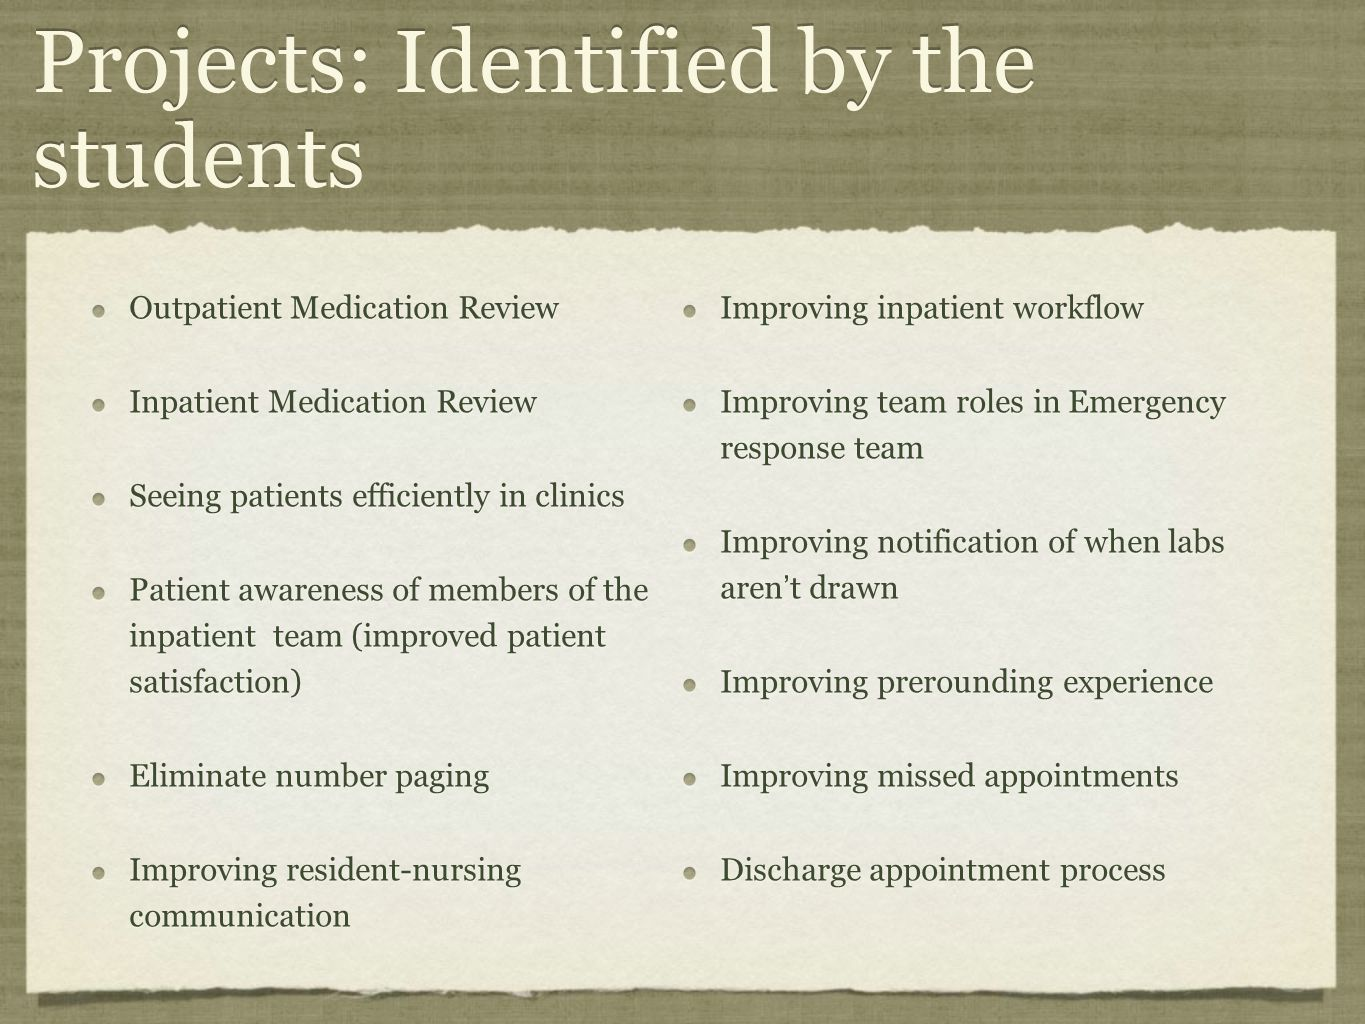 Projects: Identified by the students Outpatient Medication Review Inpatient Medication Review Seeing patients efficiently in clinics Patient awareness